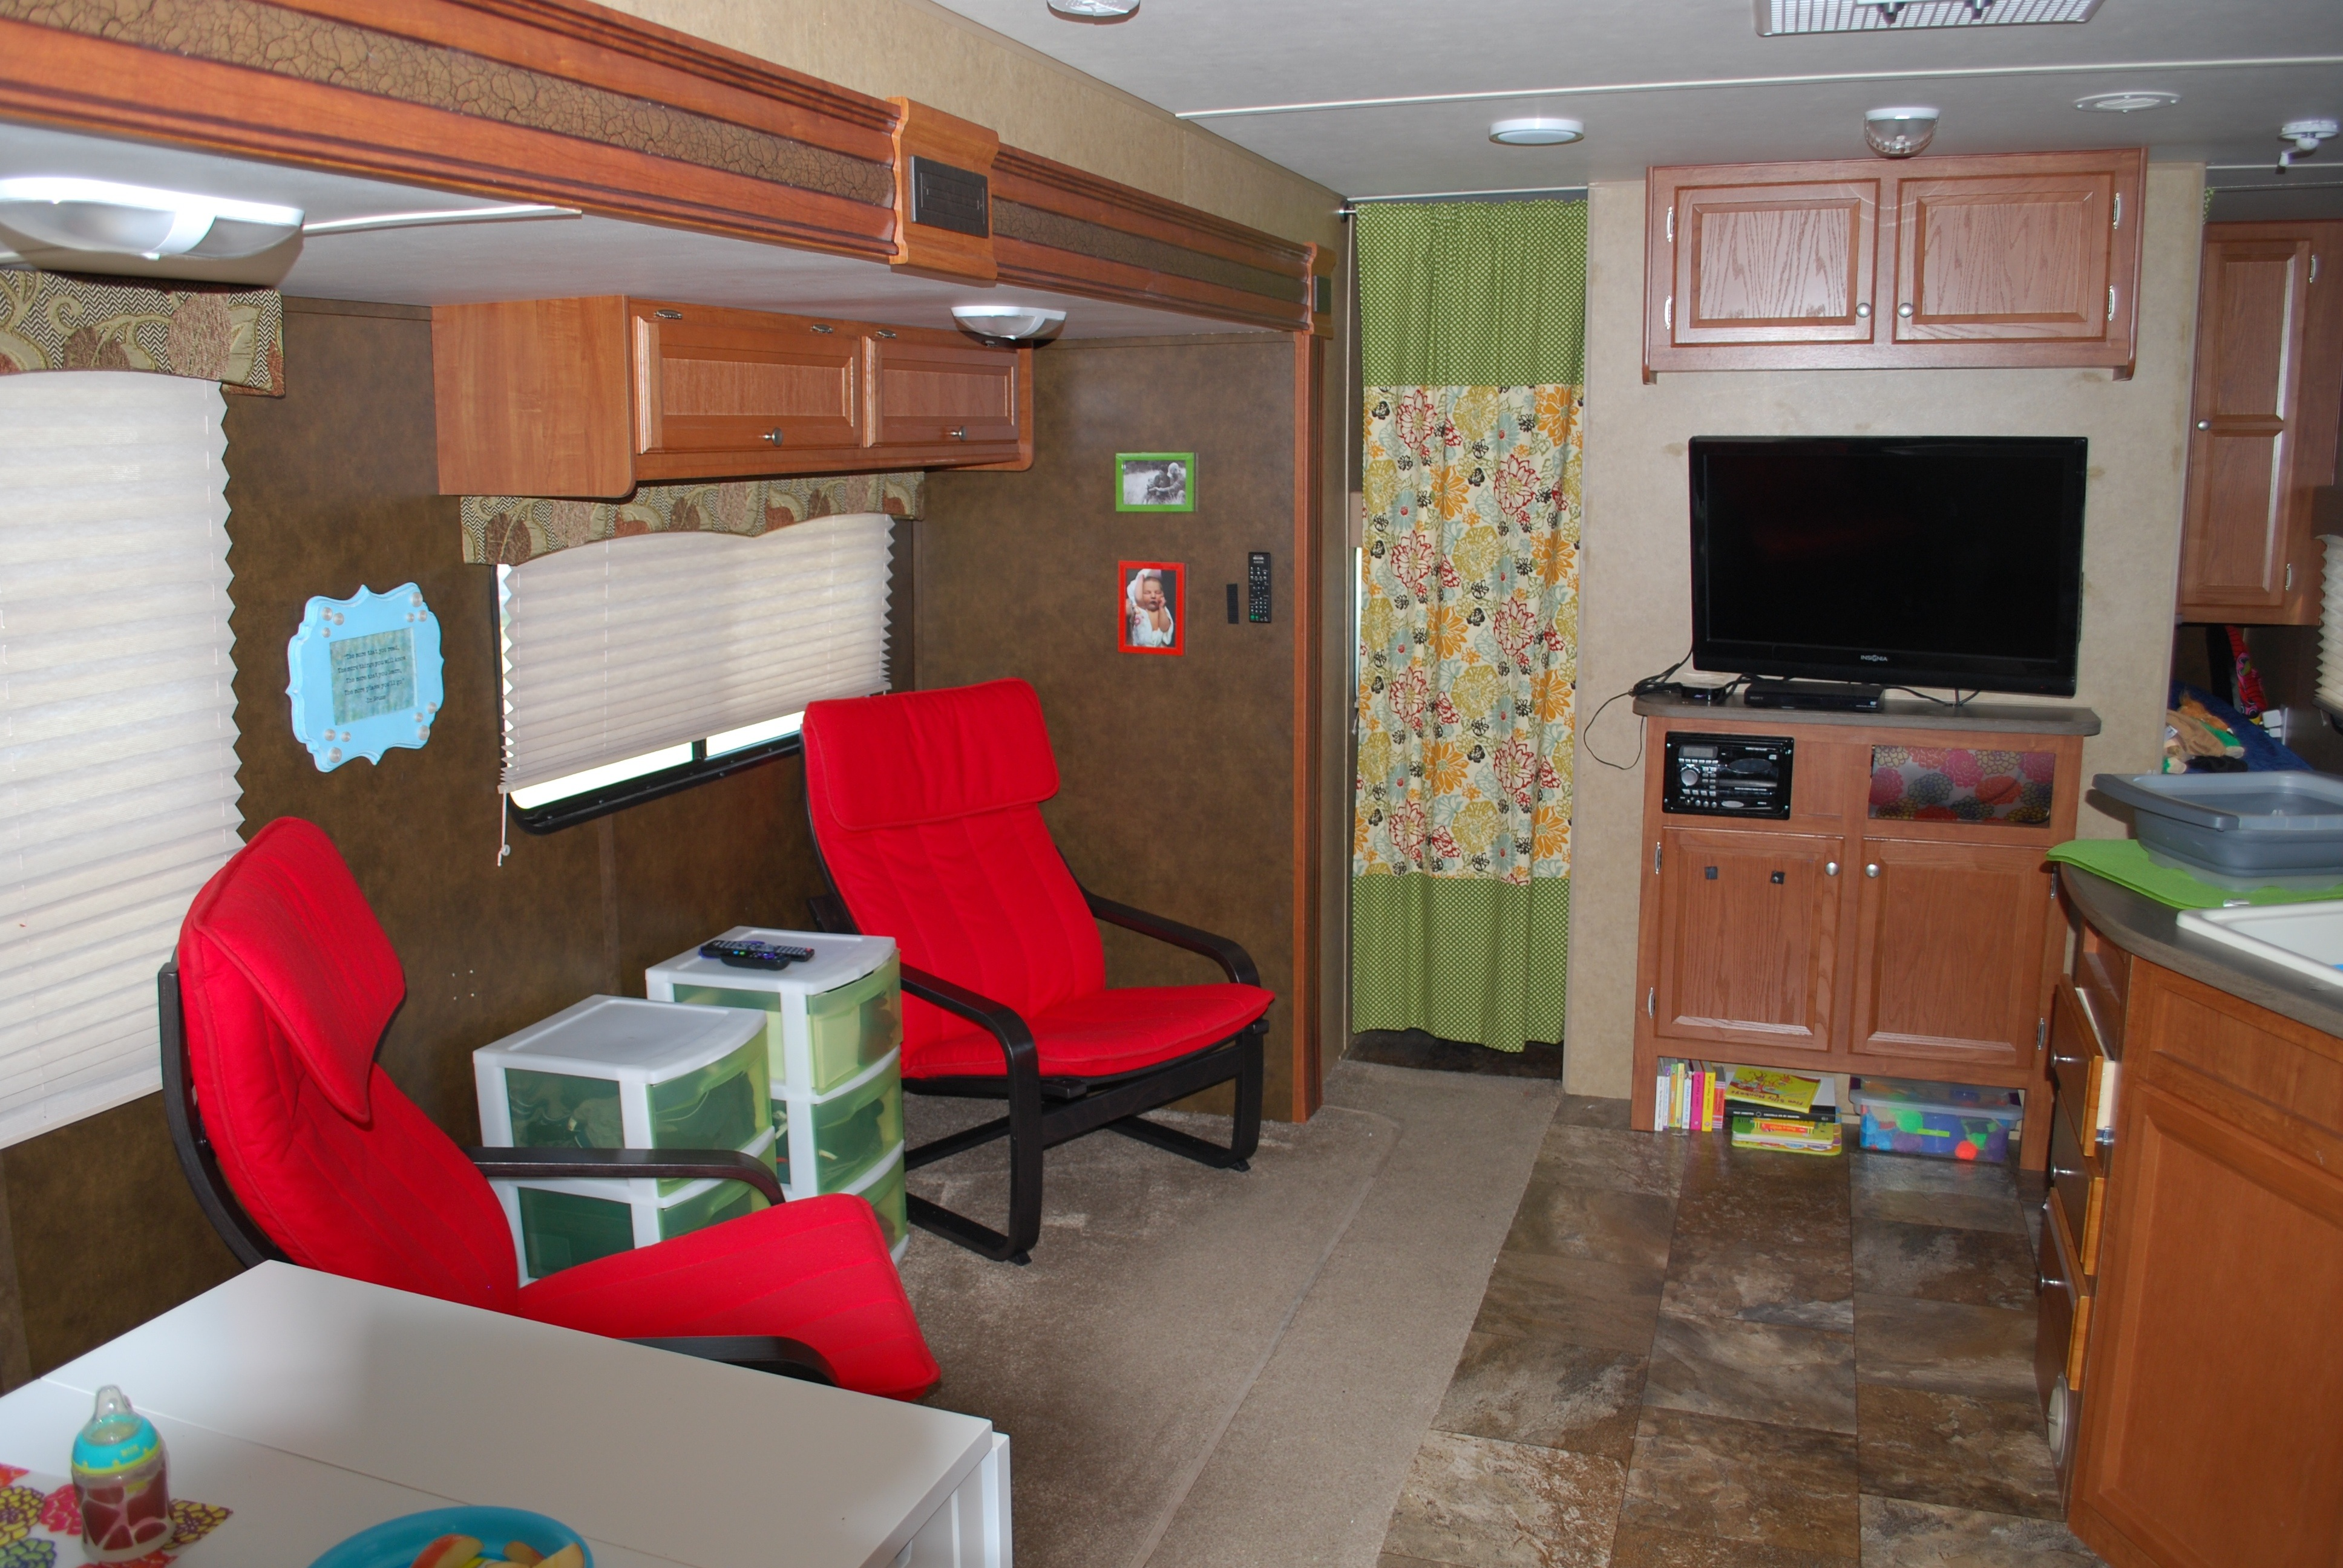 Modified Rv Living Space And Bedroom For Under 500 Road